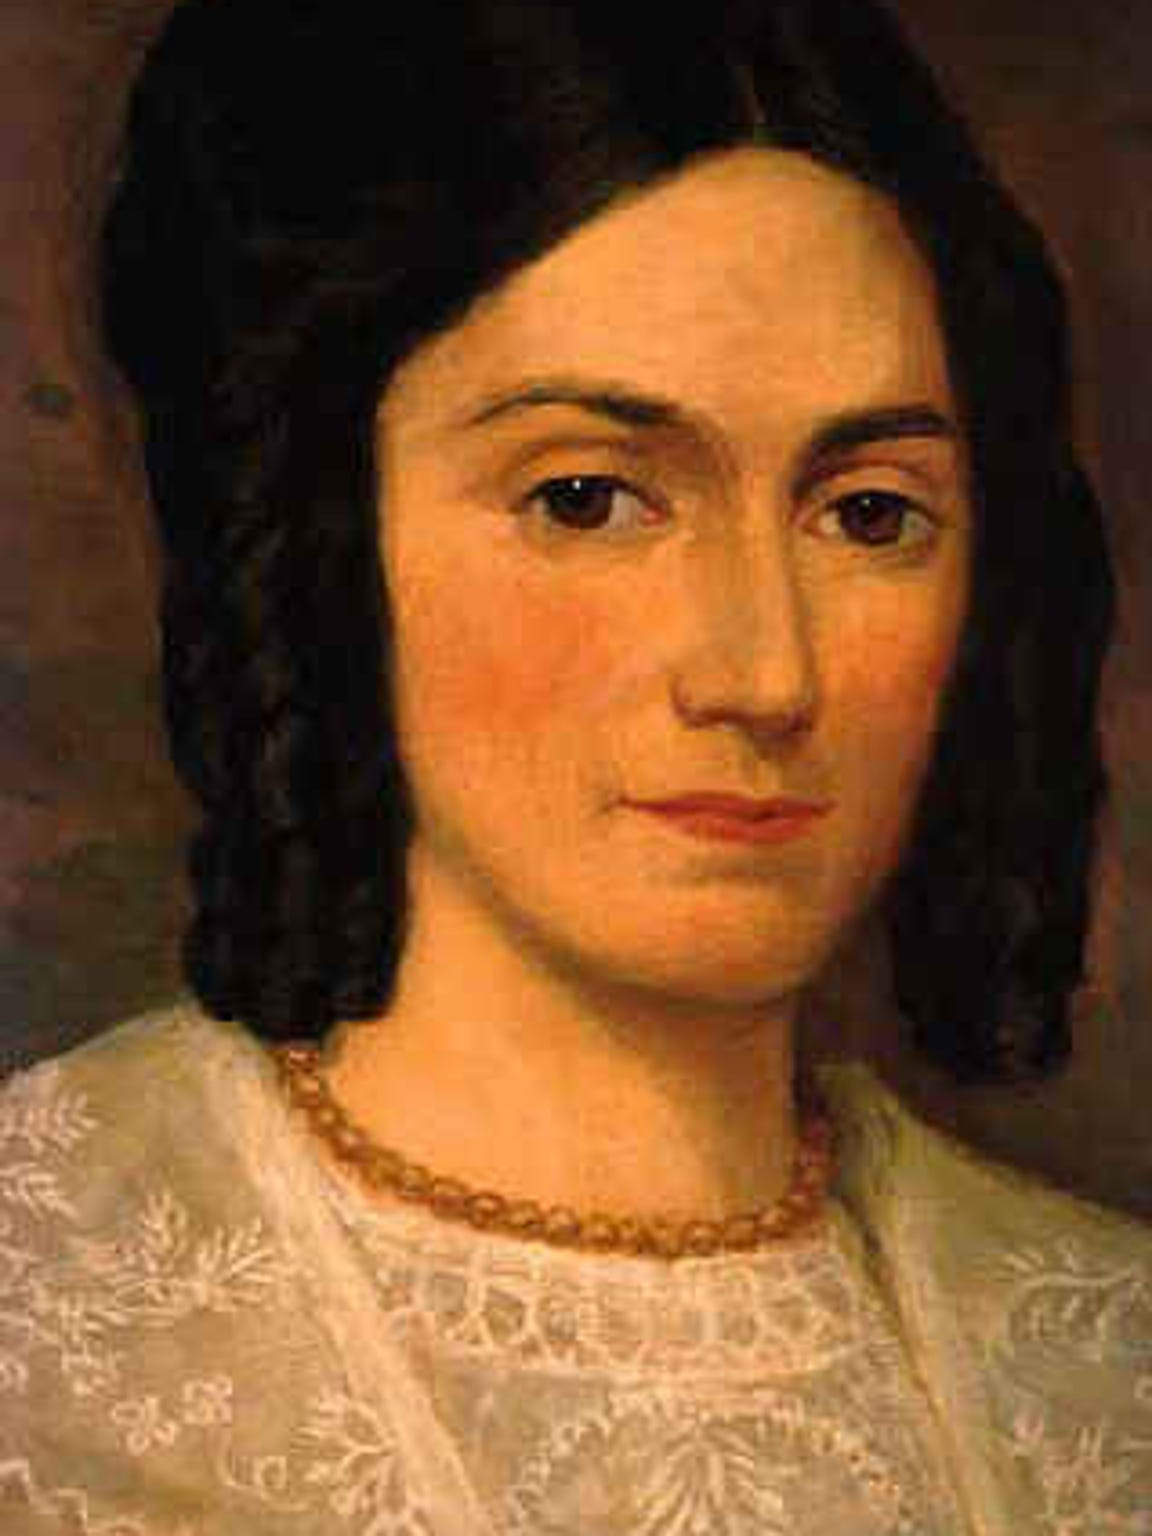 Emma Smith, wife of Joseph Smith Jr., was the first president of the Relief Society, the LDS Church's organization for women.